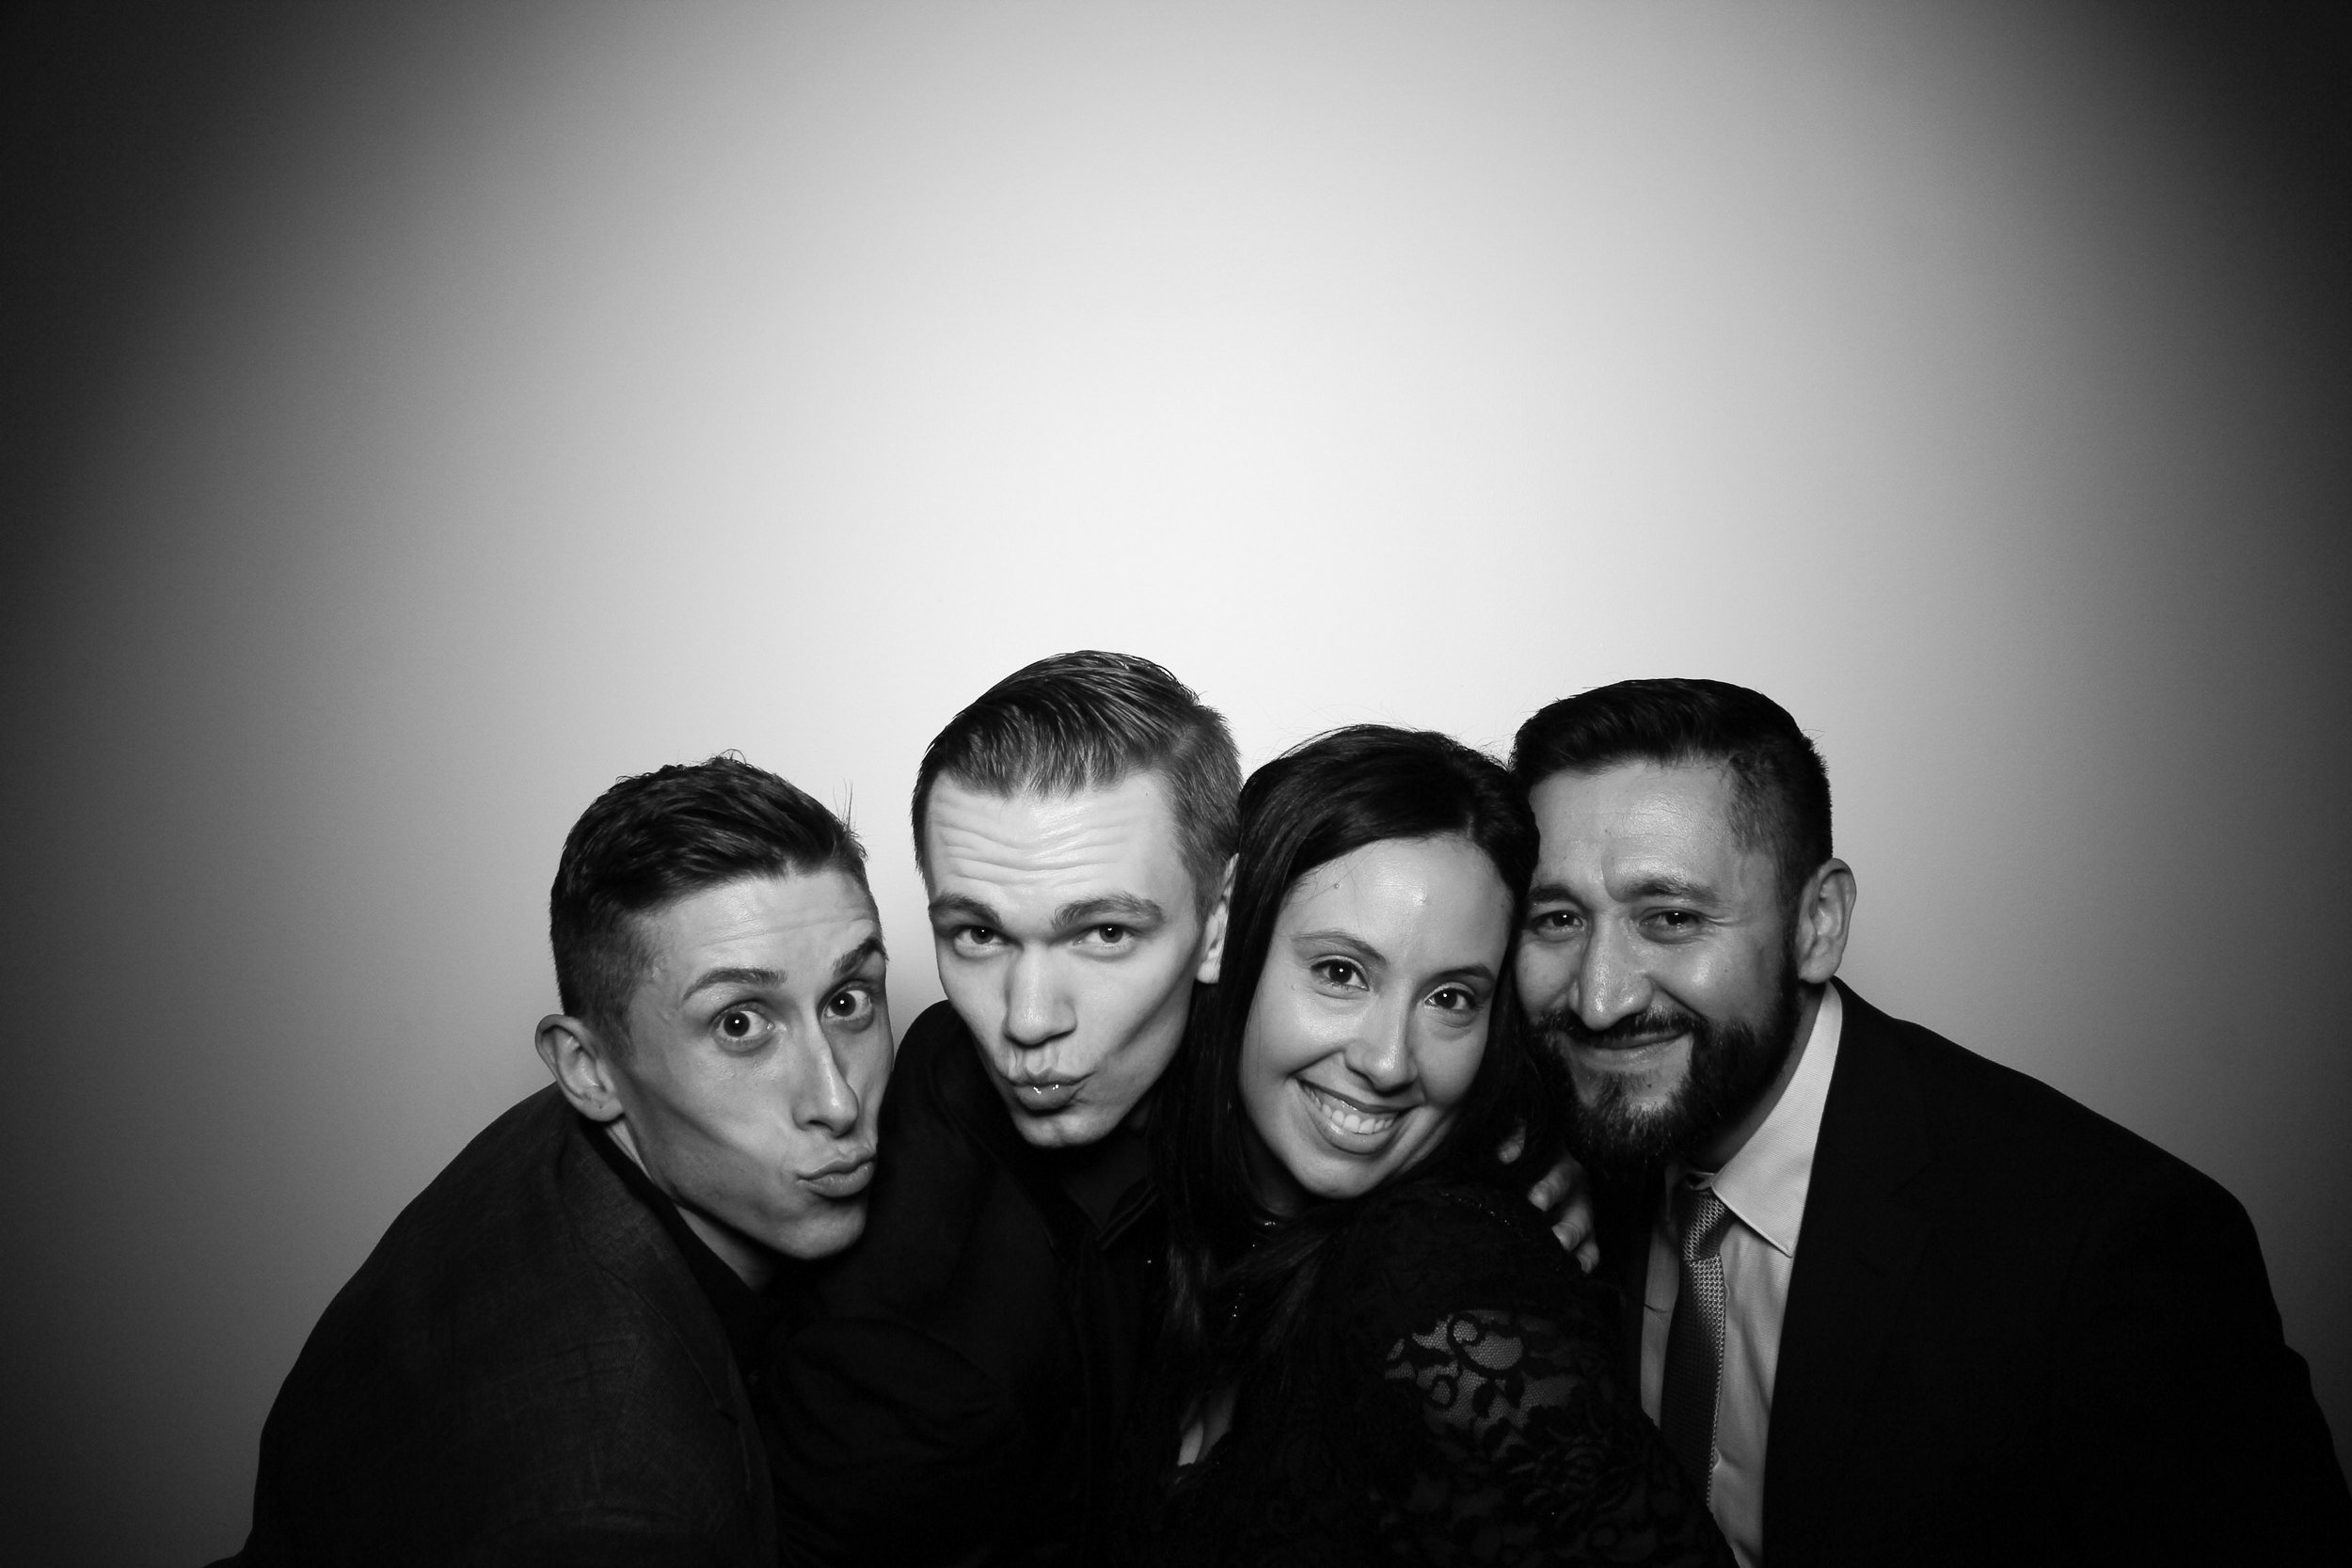 Chicago_Vintage_Photobooth_Solstice_Company_Holiday_Party_19.jpg